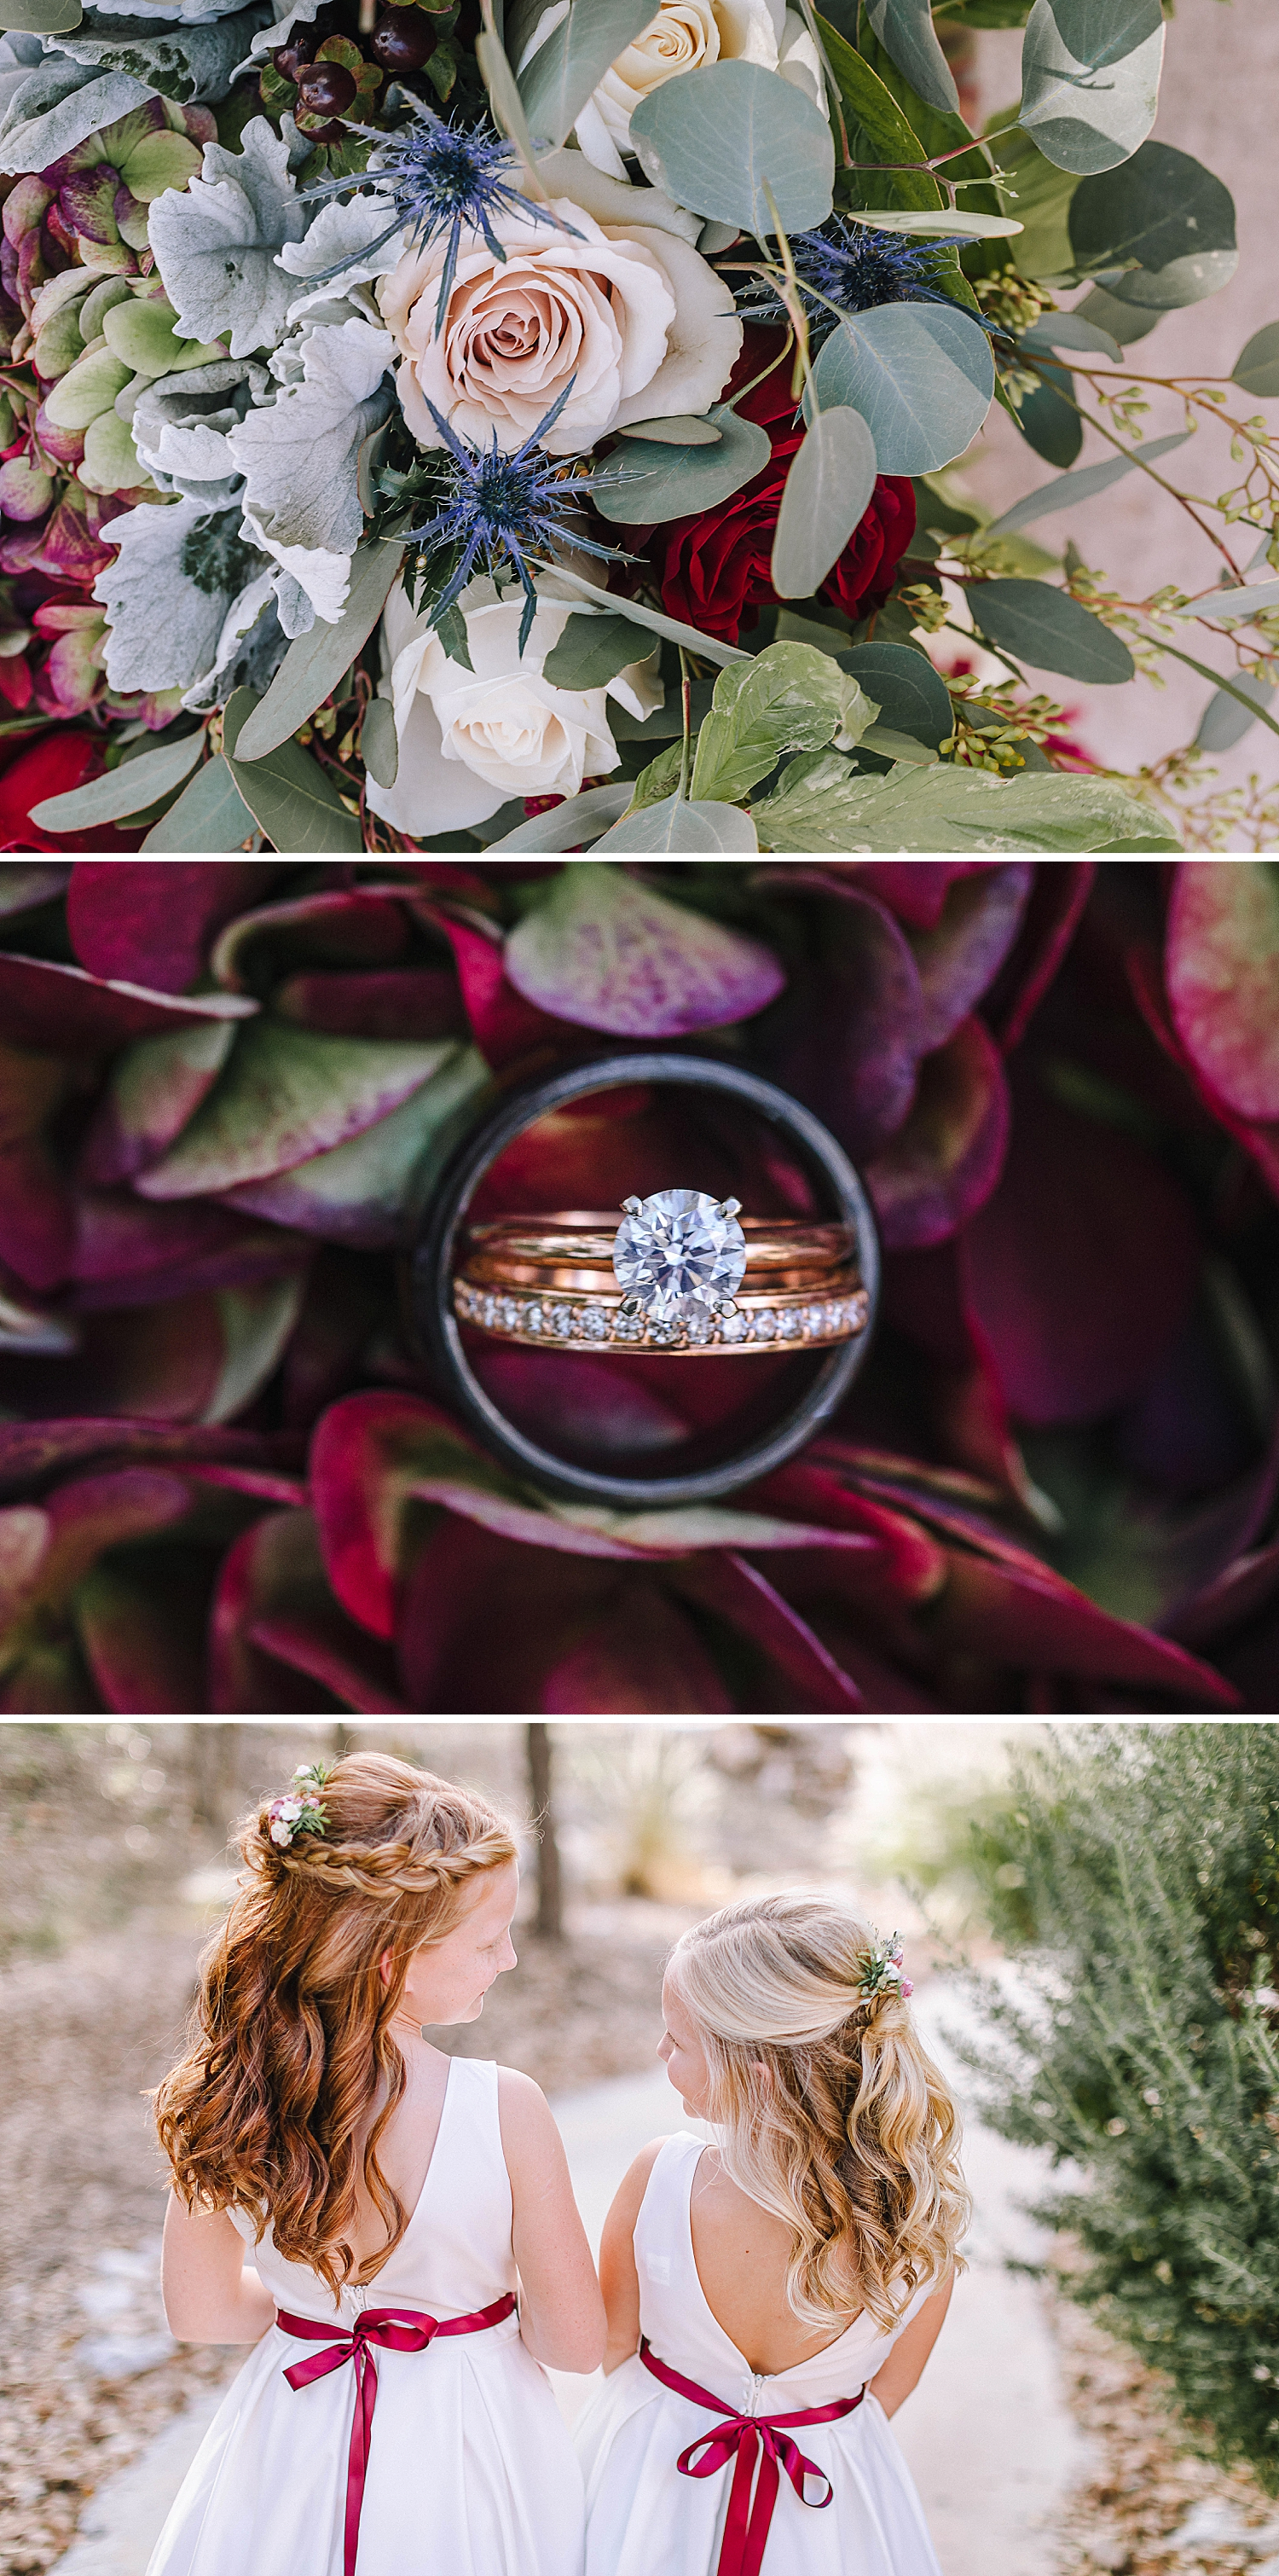 Geronimo-Oaks-Wedding-Venue-Seguin-Texas-Elegant-Navy-Burgundy-Wedding-Carly-Barton-Photography_0003.jpg